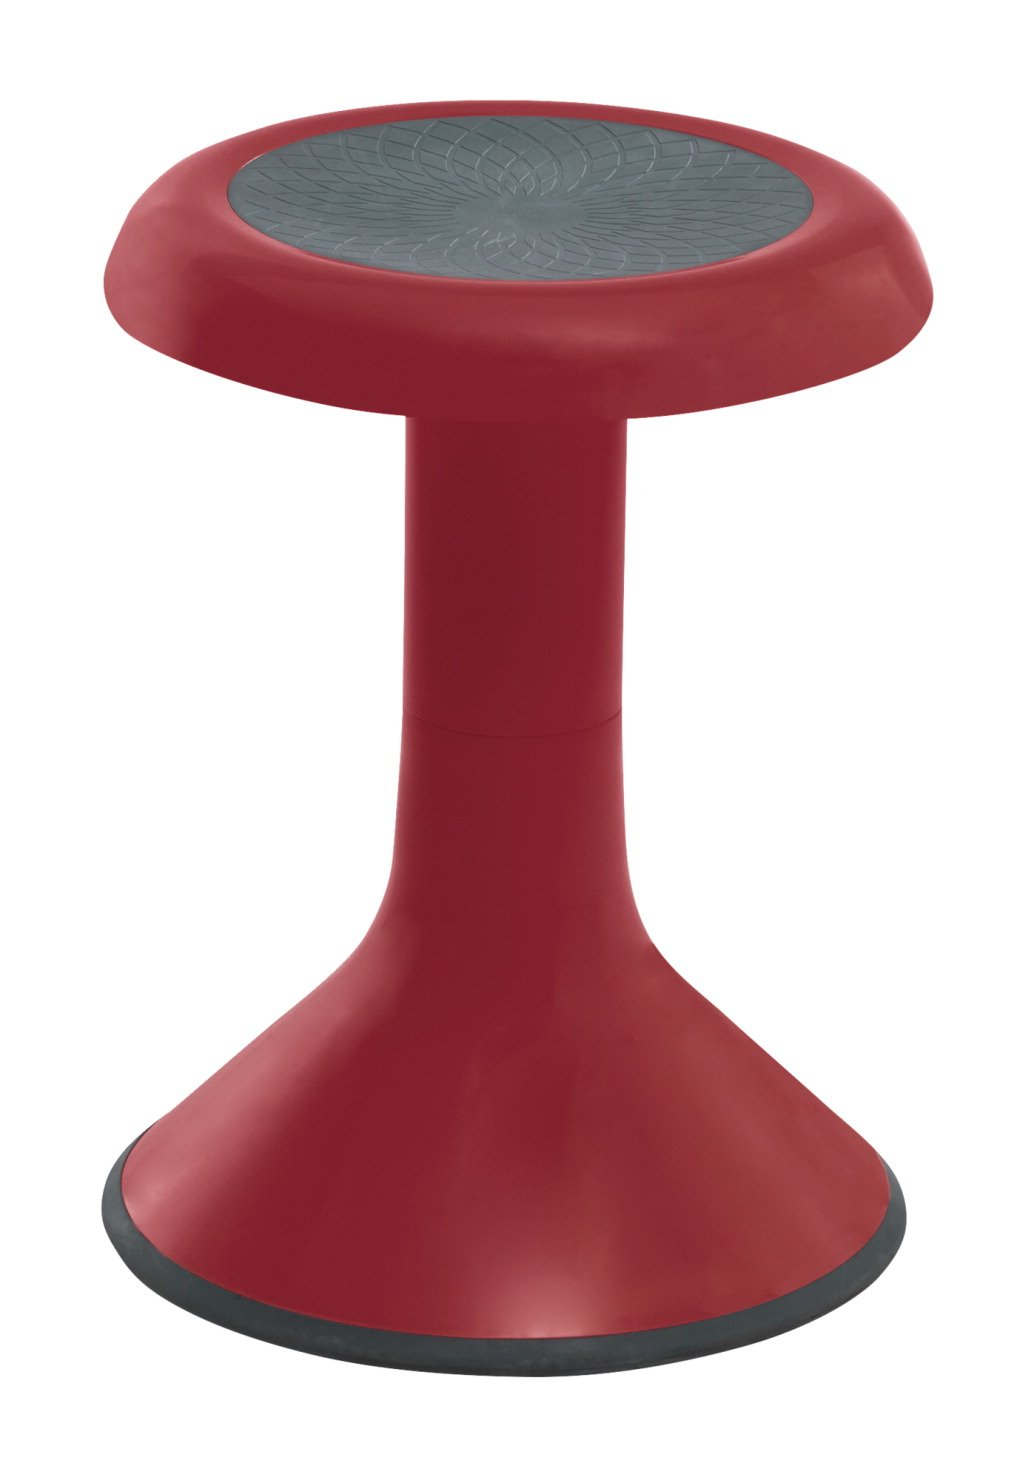 Classroom Select NeoRok Motion Stool, Active Wobble Seating, 12-1/2 Inch Seat Height, Claret